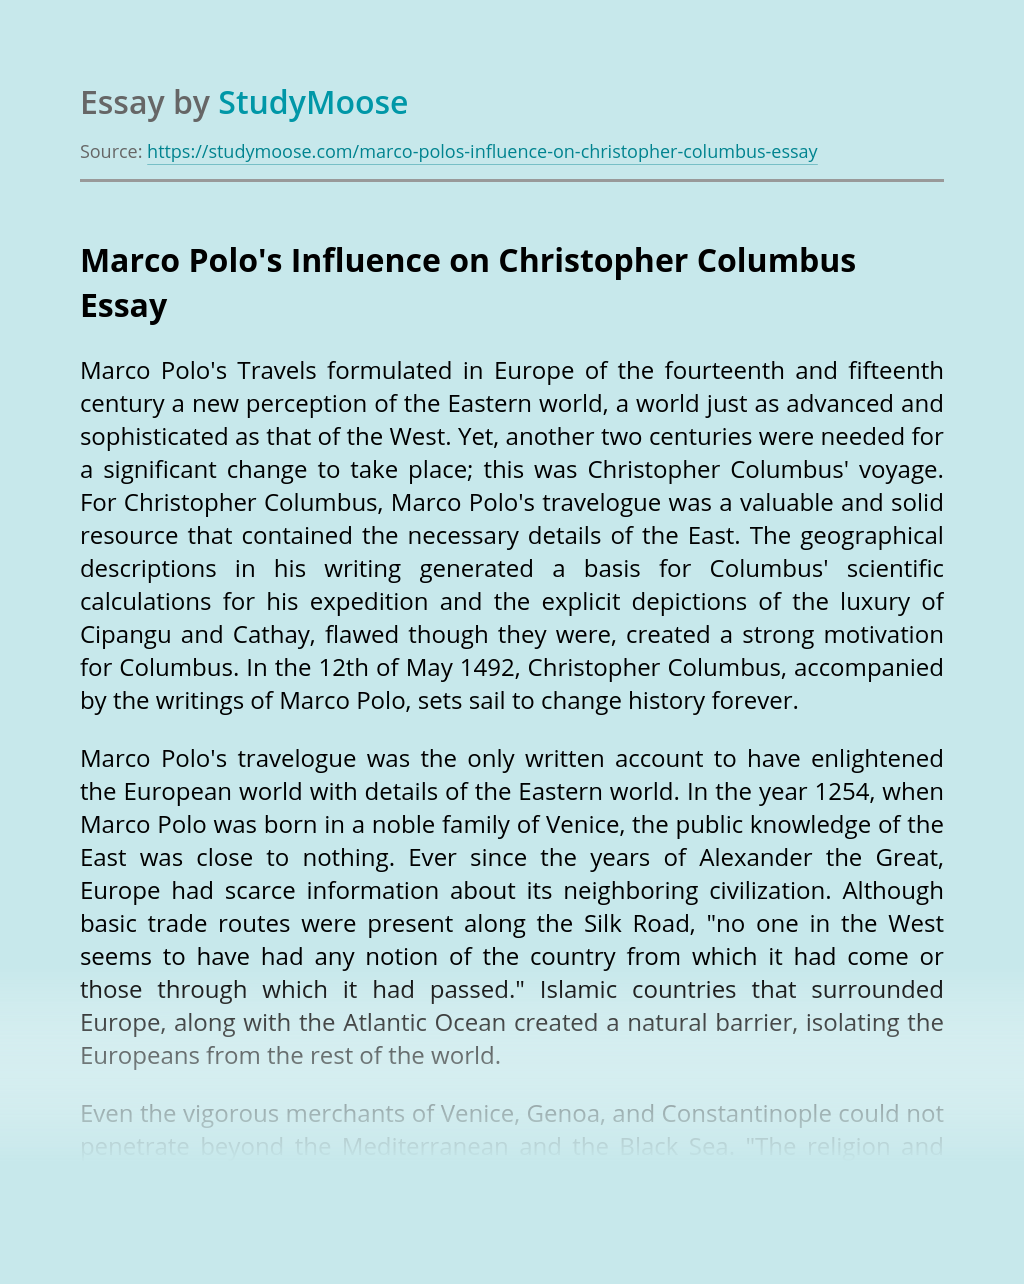 Marco Polo's Influence on Christopher Columbus